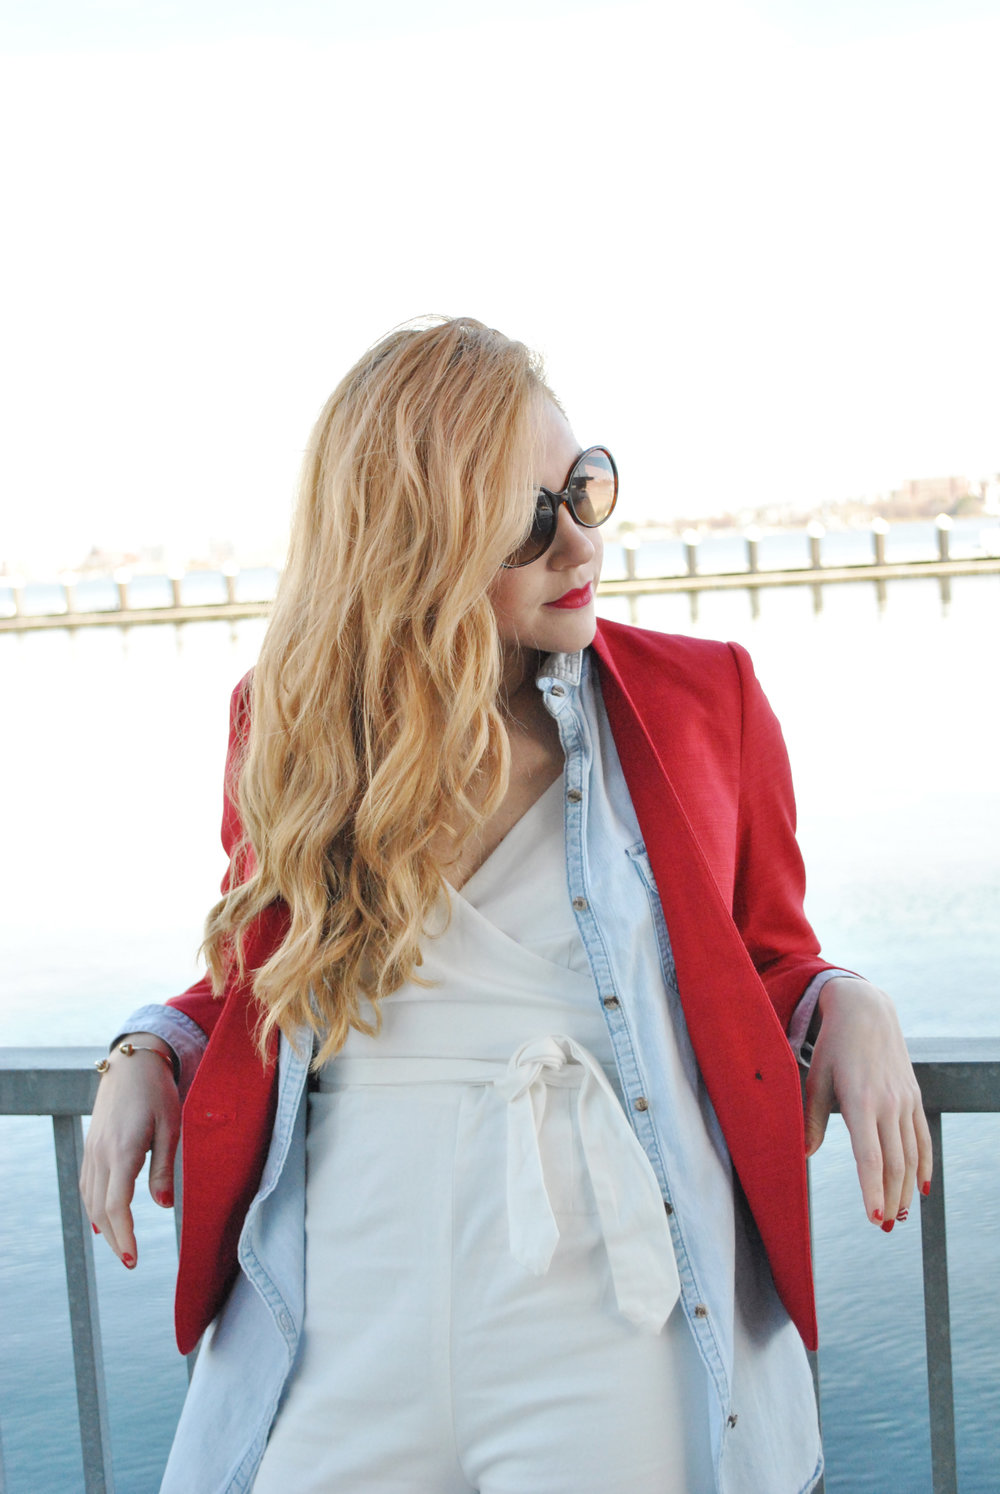 thoughtfulwish | jumpsuit, white, anthropologie, wide leg, fashion, fashion blogger, fashion blog, spring outfit, red jacket, layers, bandana, j.crew, madewell, ICA, boston, bosblogger